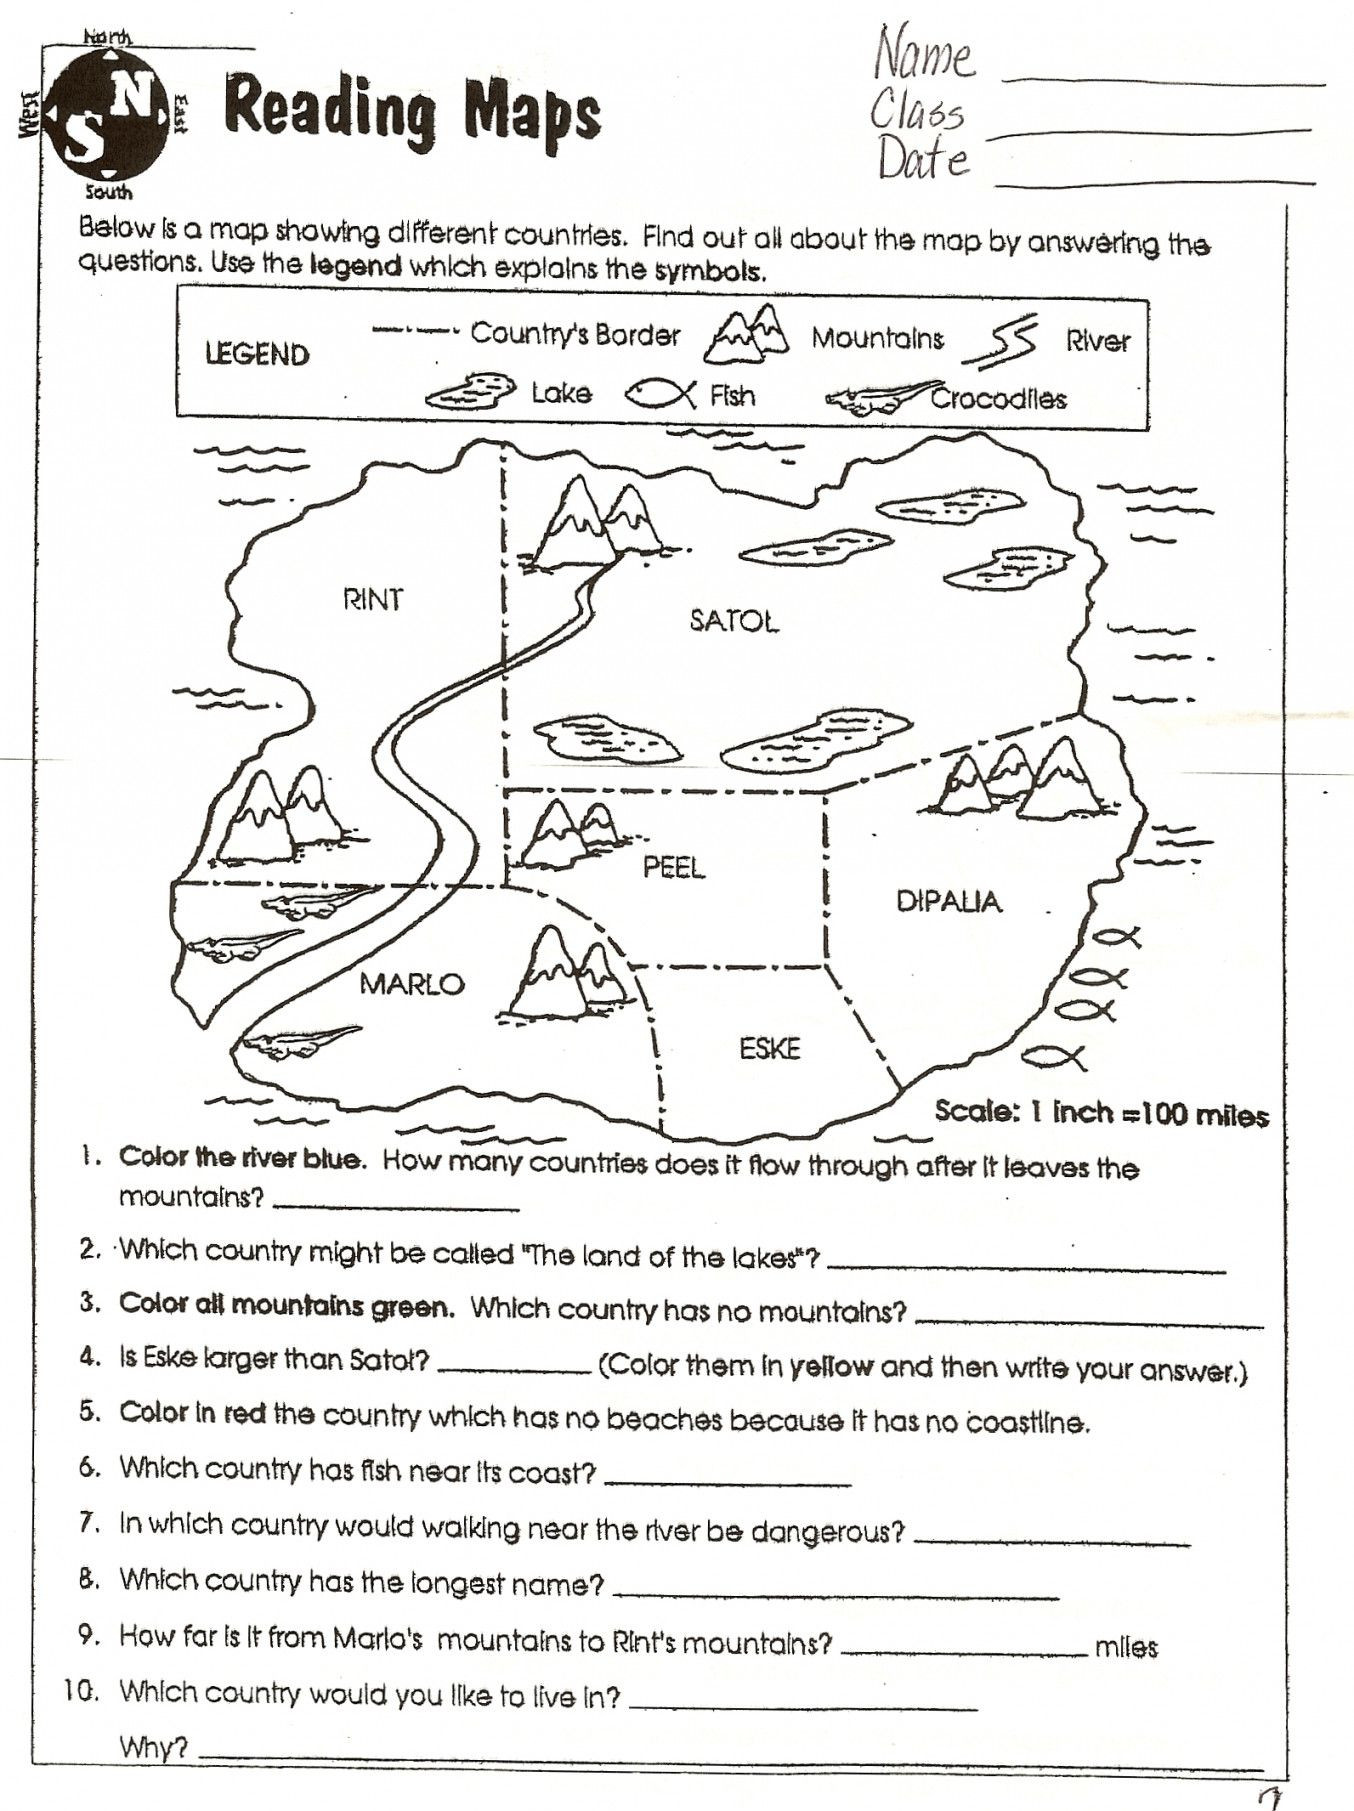 Middle School Map Skills Worksheets Map Skills Worksheets to Printable 5th Grade Middle School